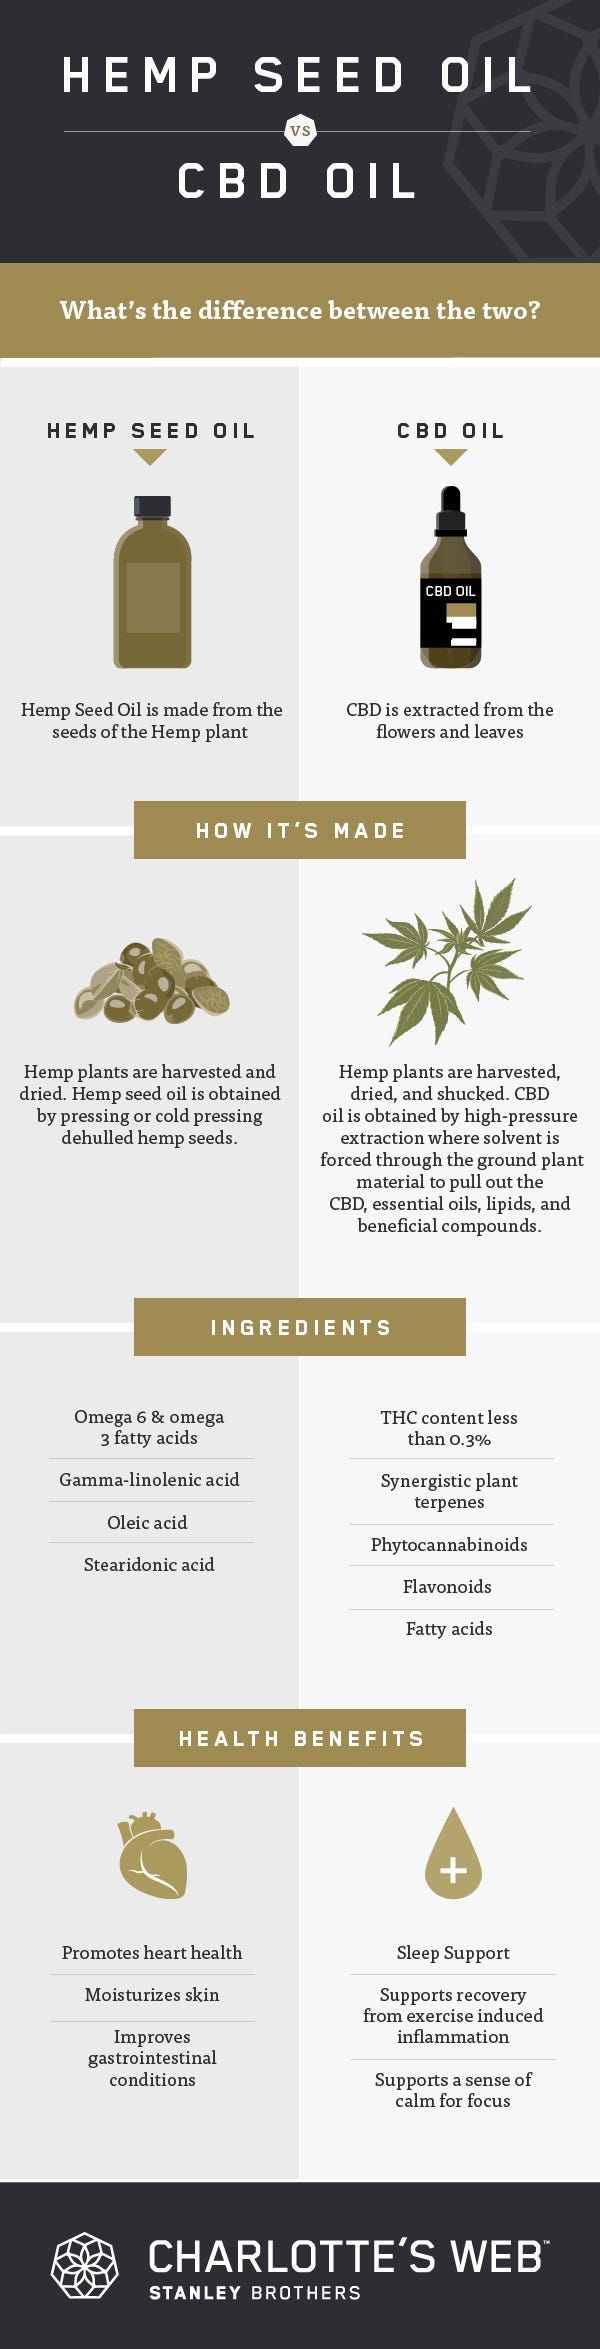 Cbd Oil Vs Hemp Seed Oil Vs Marijuana Charlotte S Web